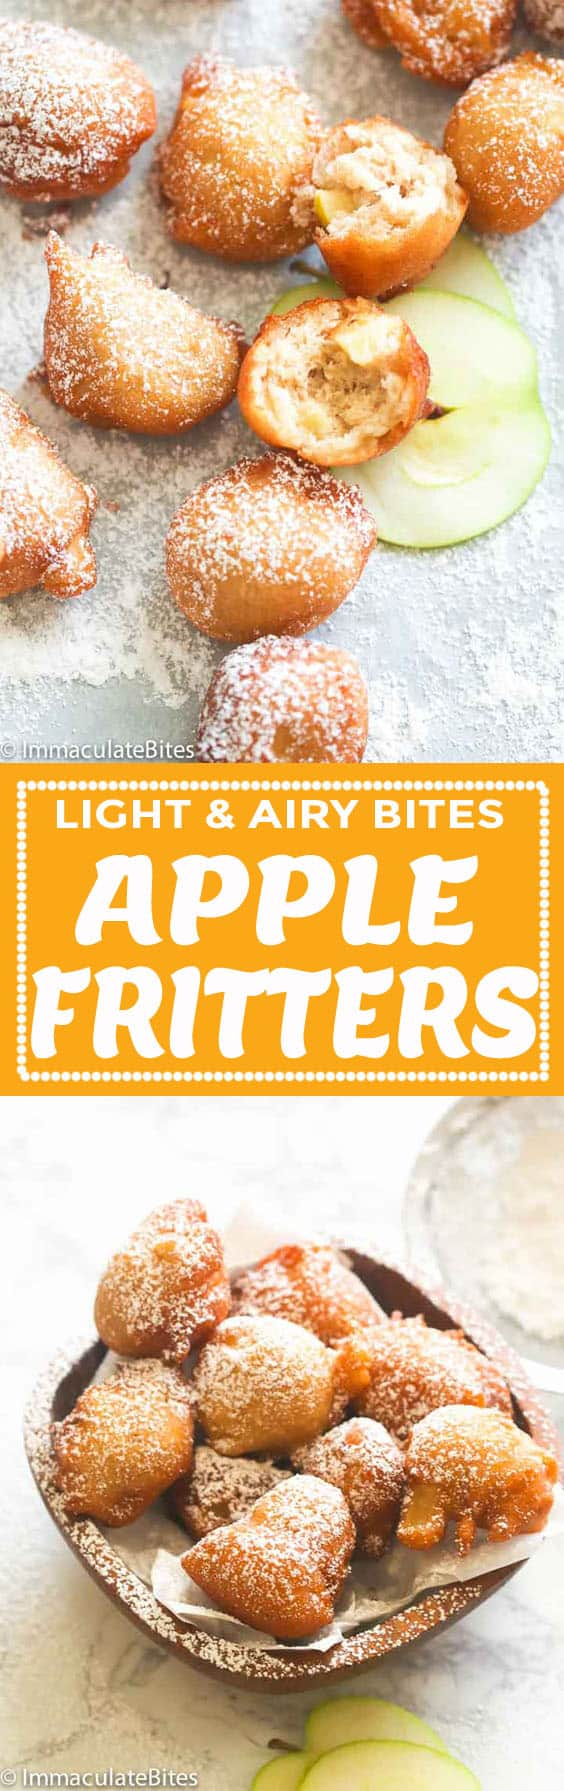 Apple Fritters Immaculate Bites